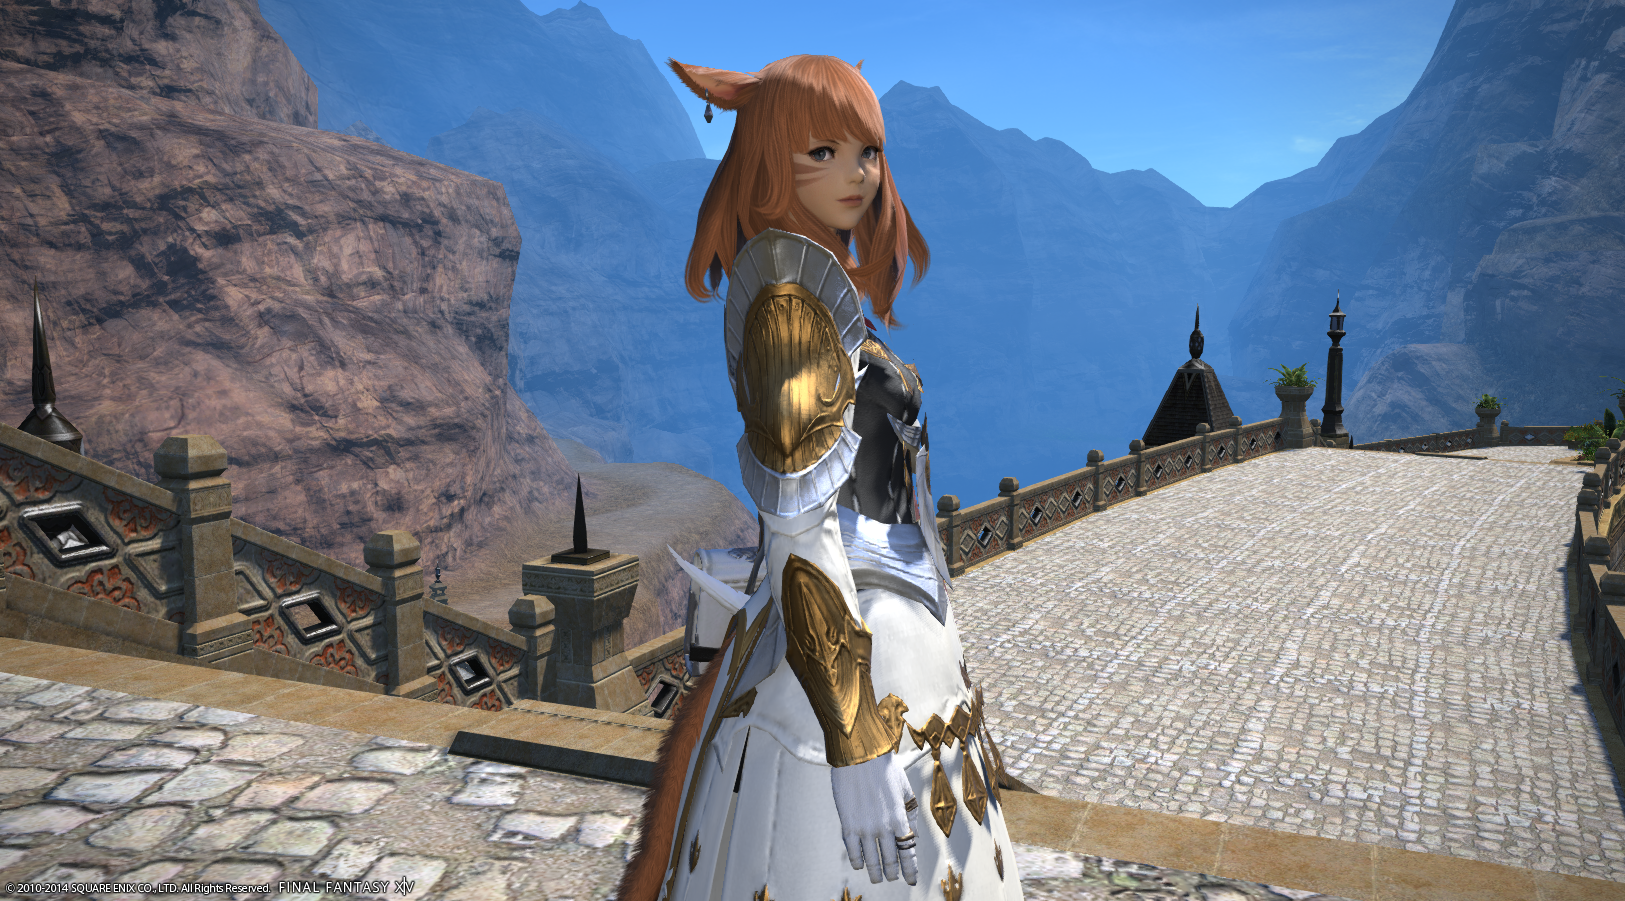 intense ffxiv scaling them hurts down bucket size file need bigger 1920 stupid reborn screenshot thread realm fantasy 1017 somewhat less with release final